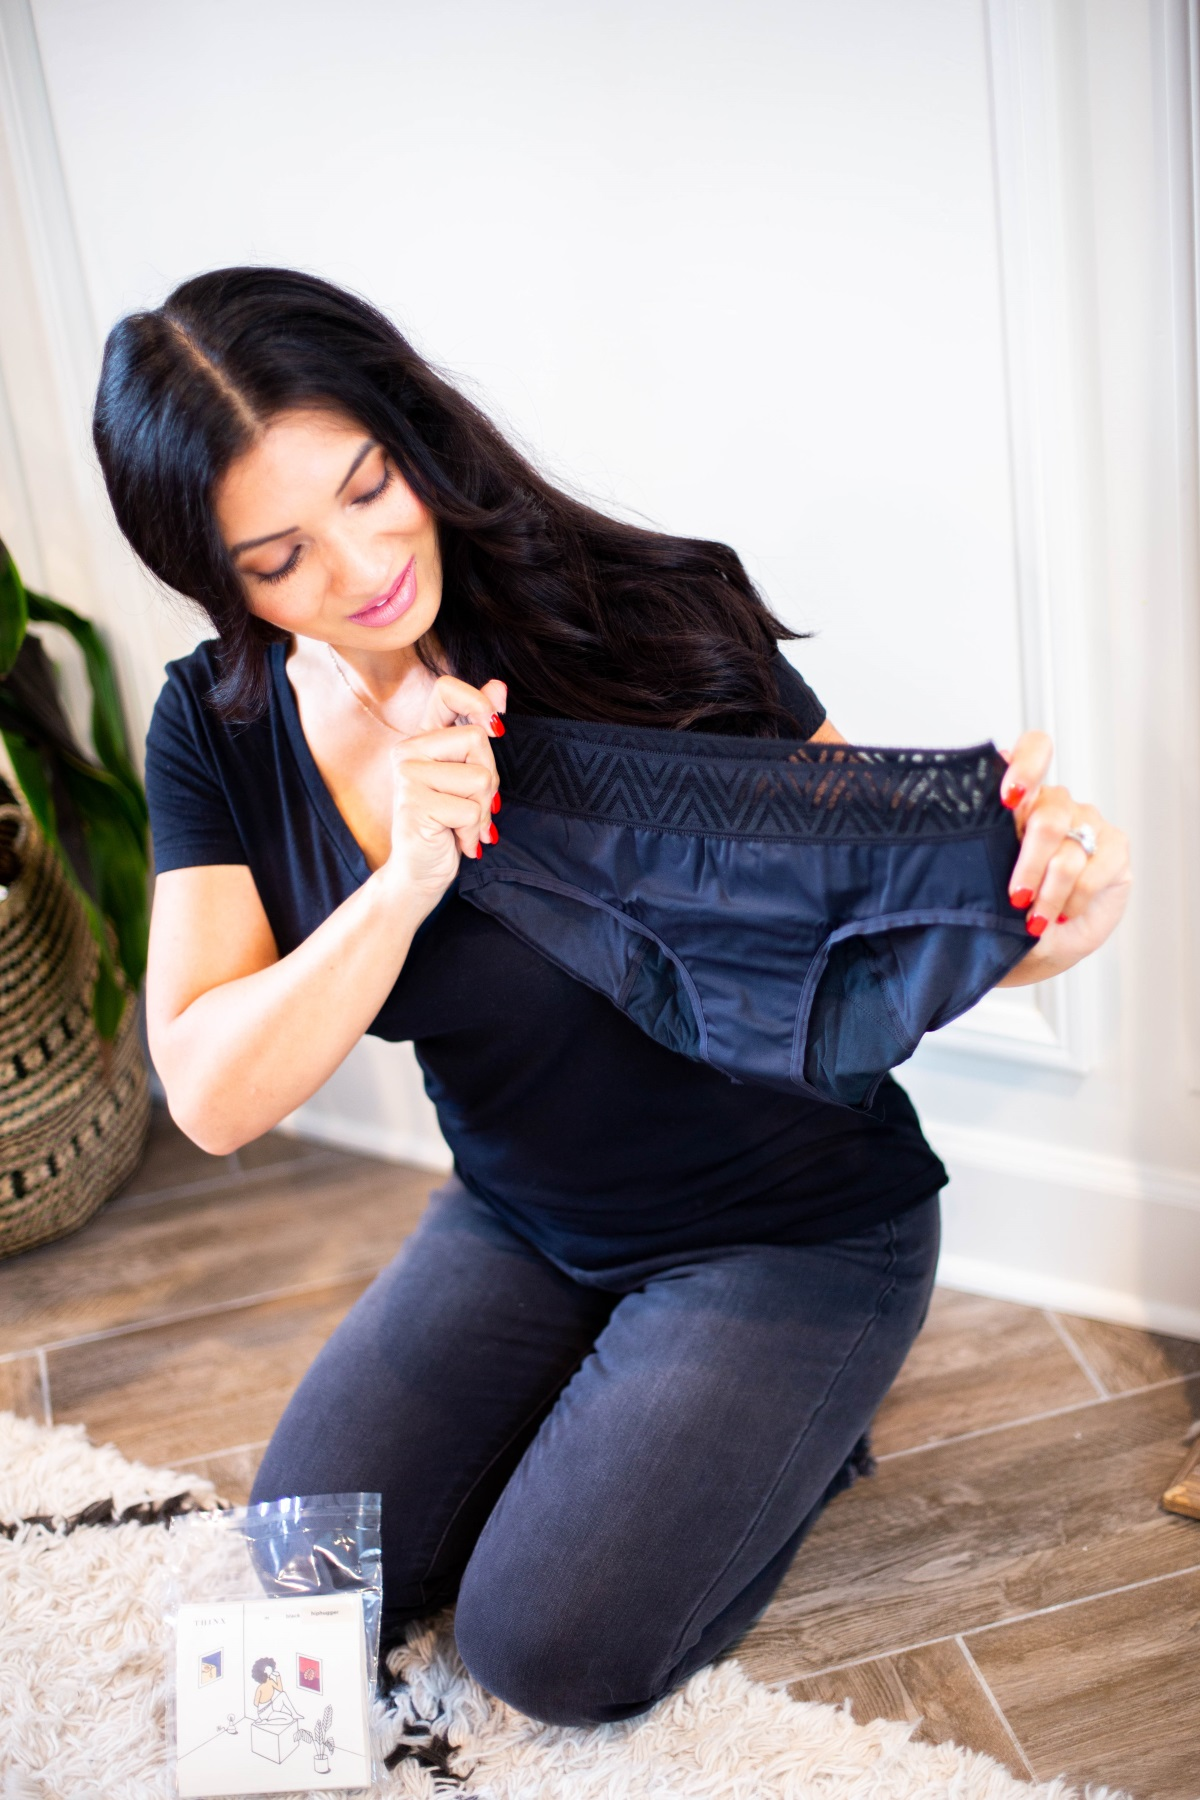 Looking for great period proof underwear regardless of your age? Orange County Blogger Debbie Savage is sharing her favorite period proof underwear!